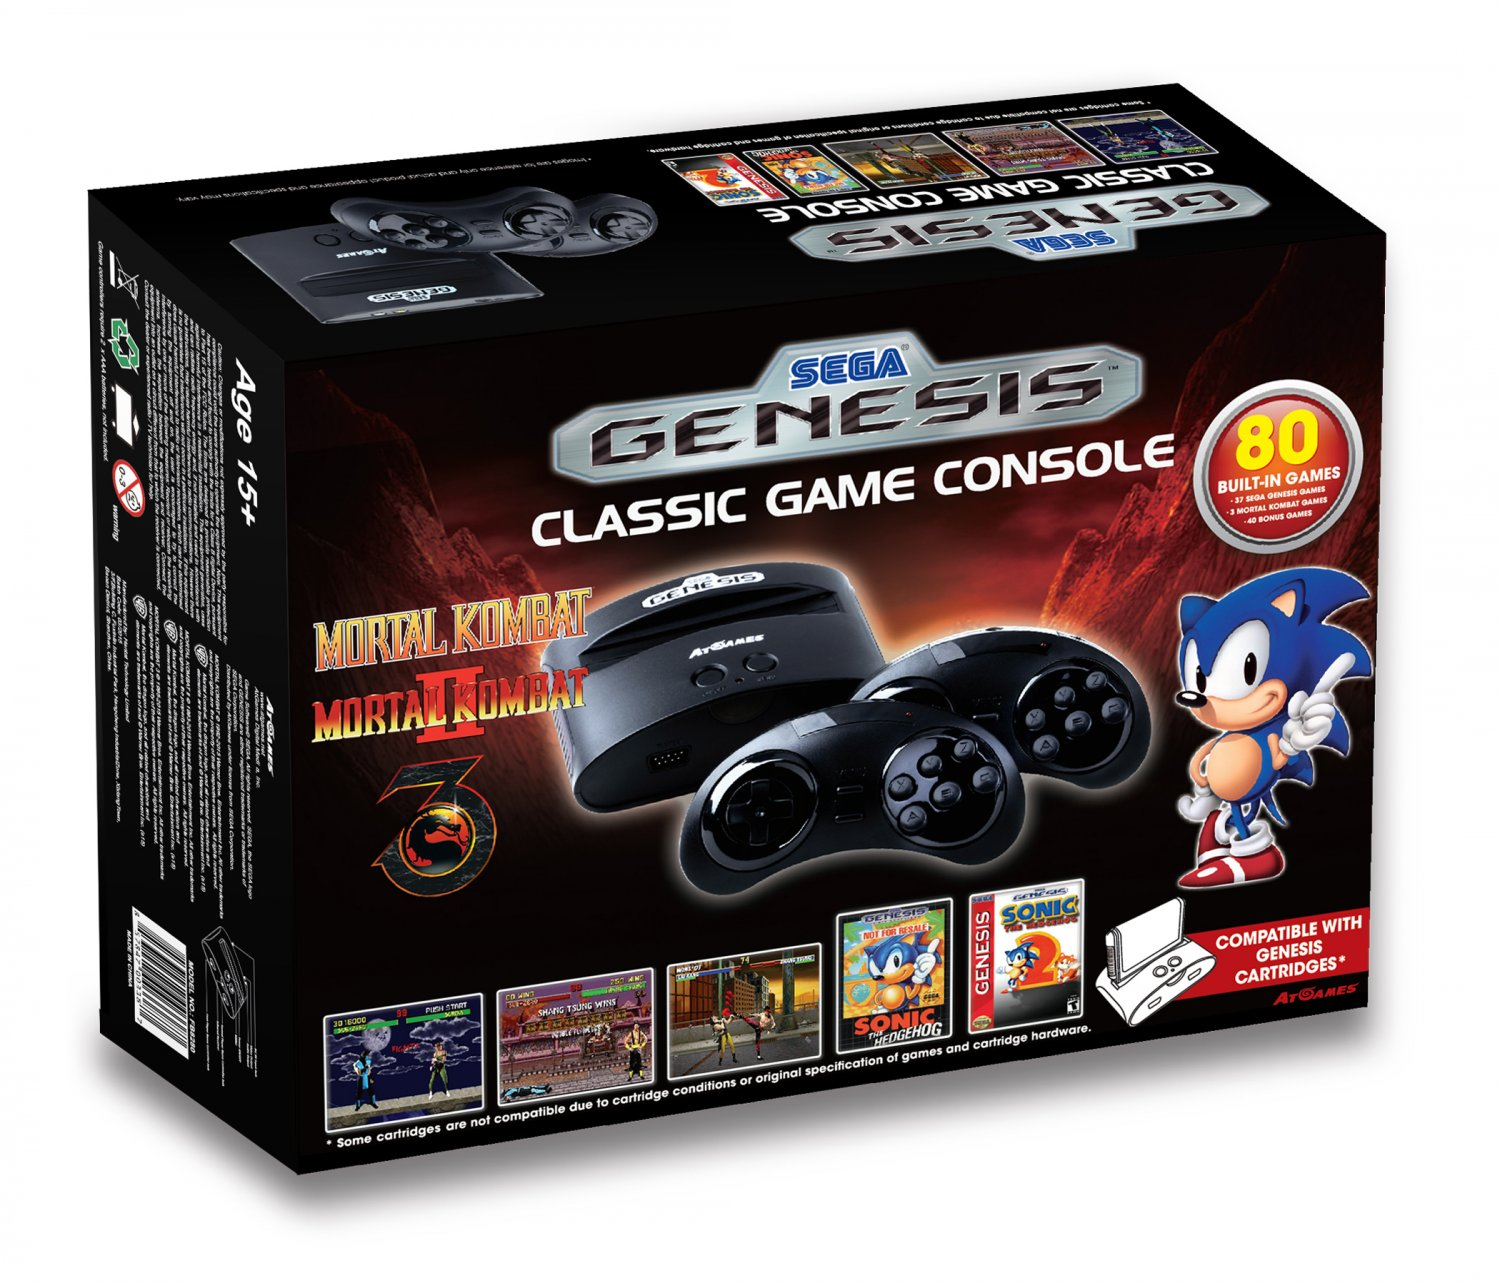 Sega genesis classic game console 2015 the official - Atari flashback classic game console game list ...